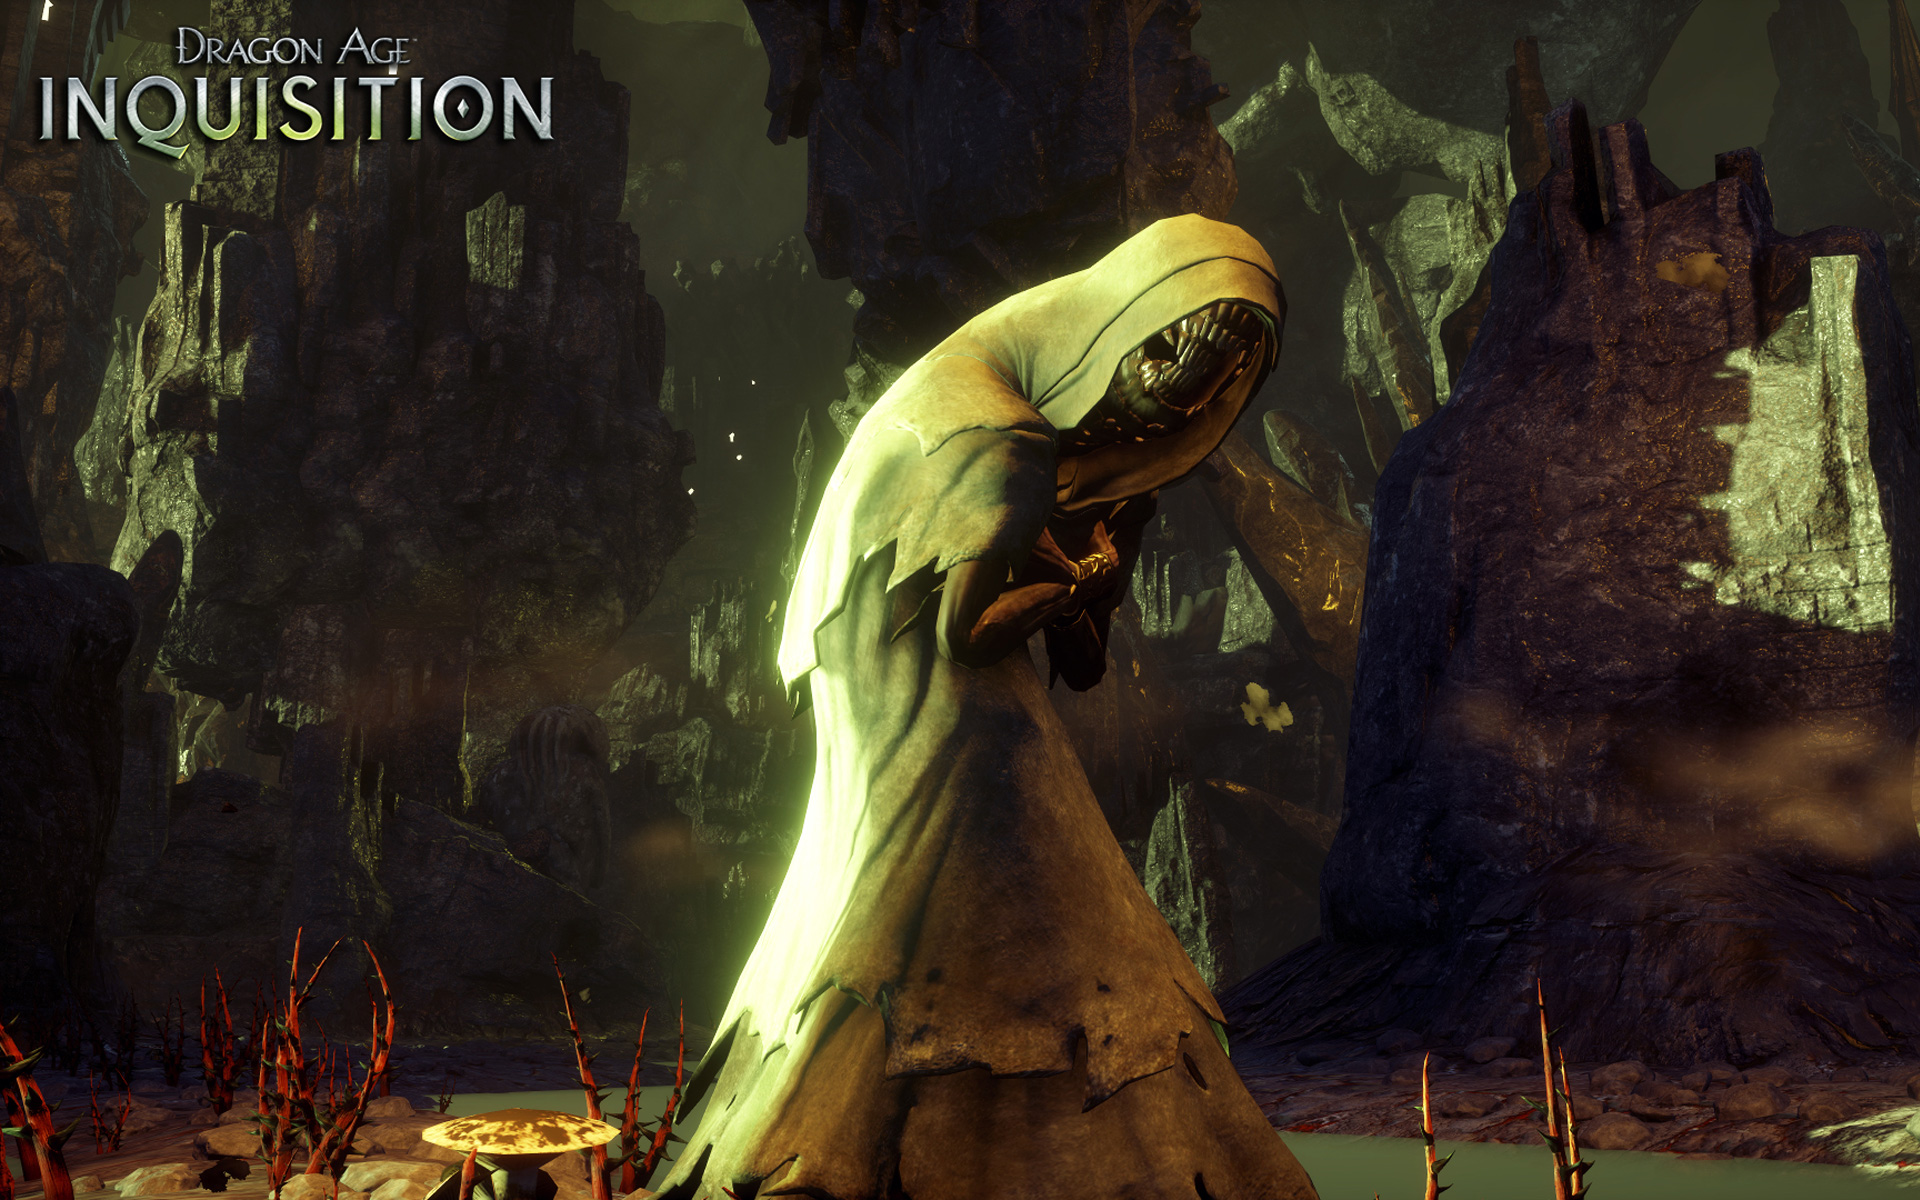 Free Dragon Age: Inquisition Wallpaper in 1920x1200